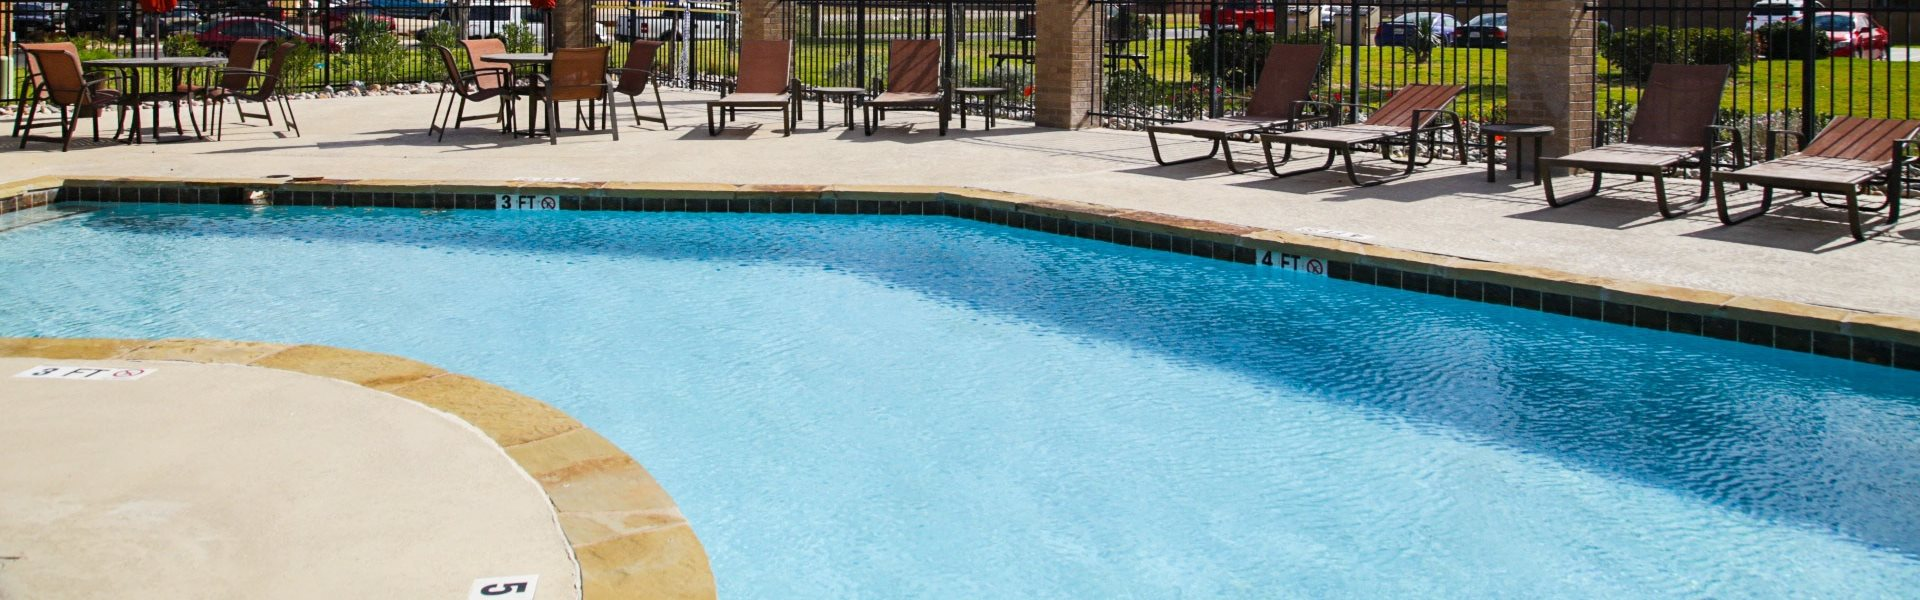 Refreshing Pool with Cabanas at Hawthorne House, TX